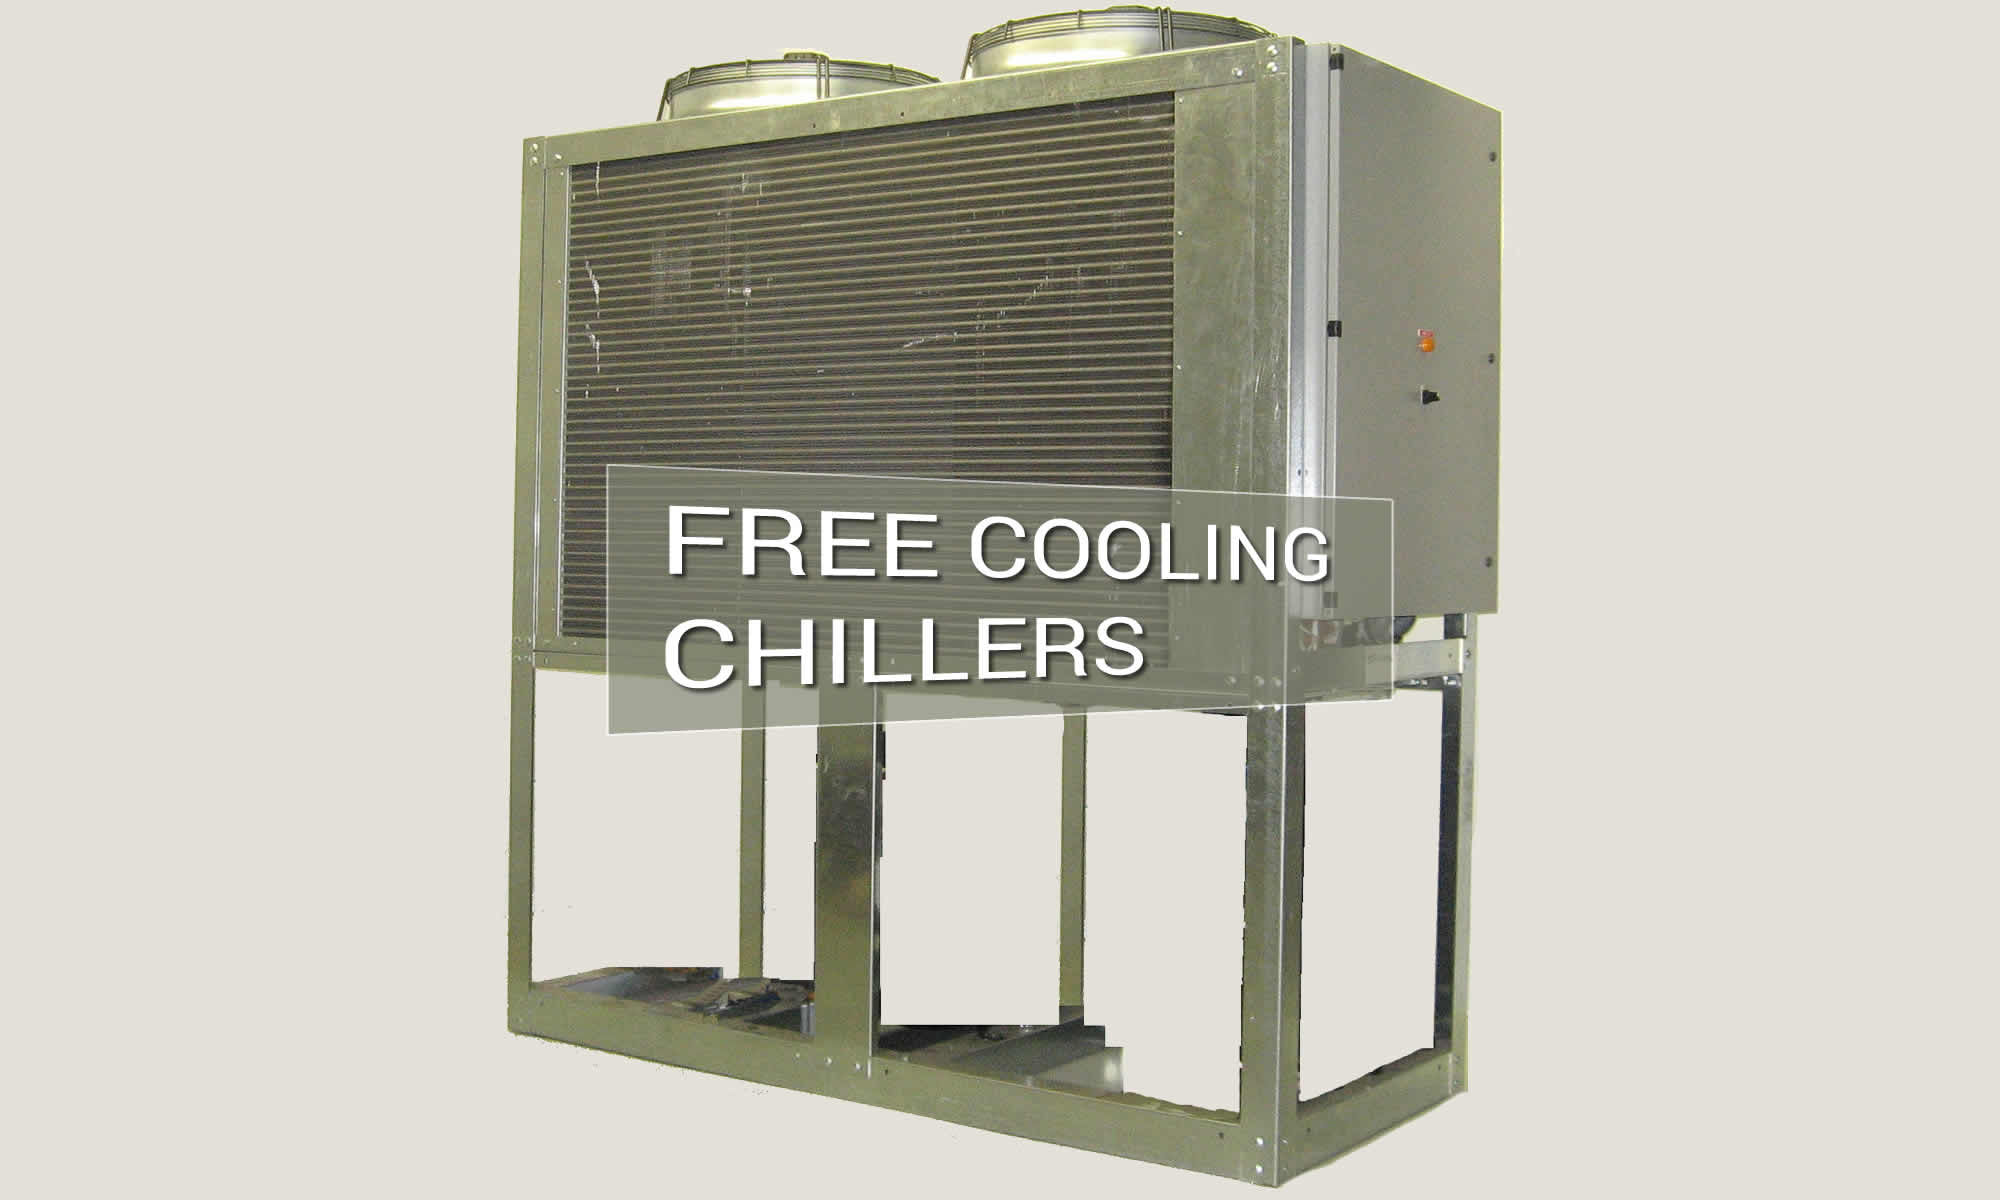 Free Cooling Chillers